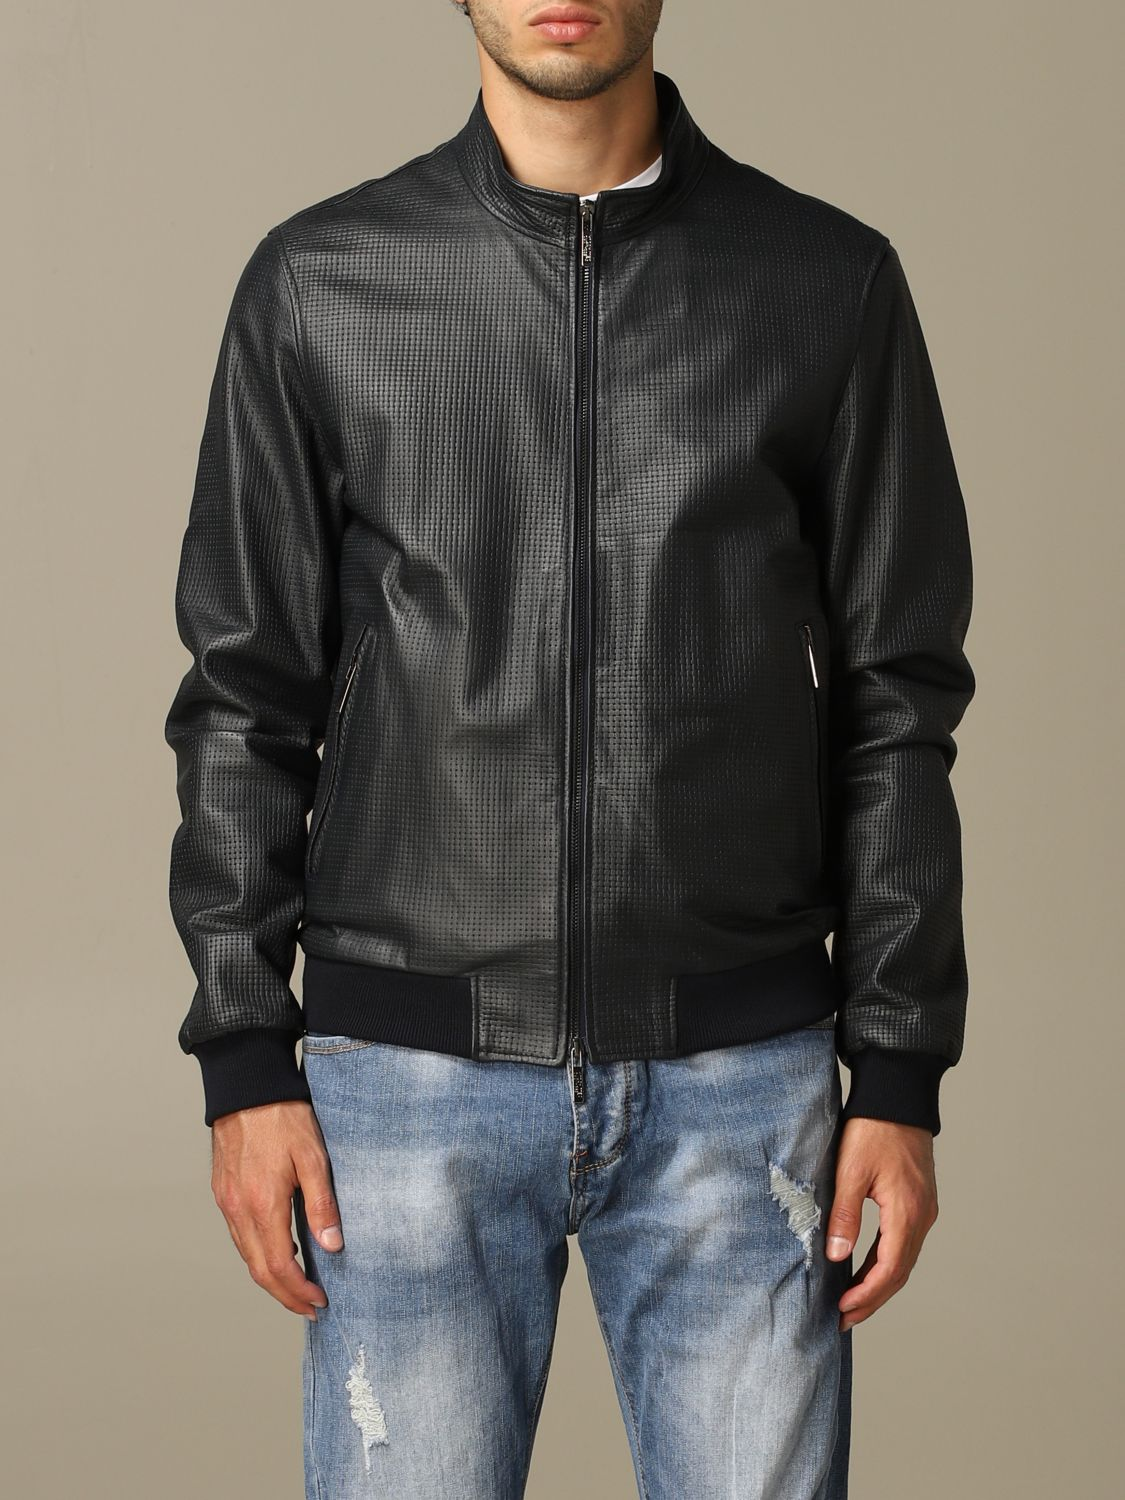 Jacket Alessandro Dell'acqua: Alessandro Dell'acqua bomber jacket in real leather blue 1